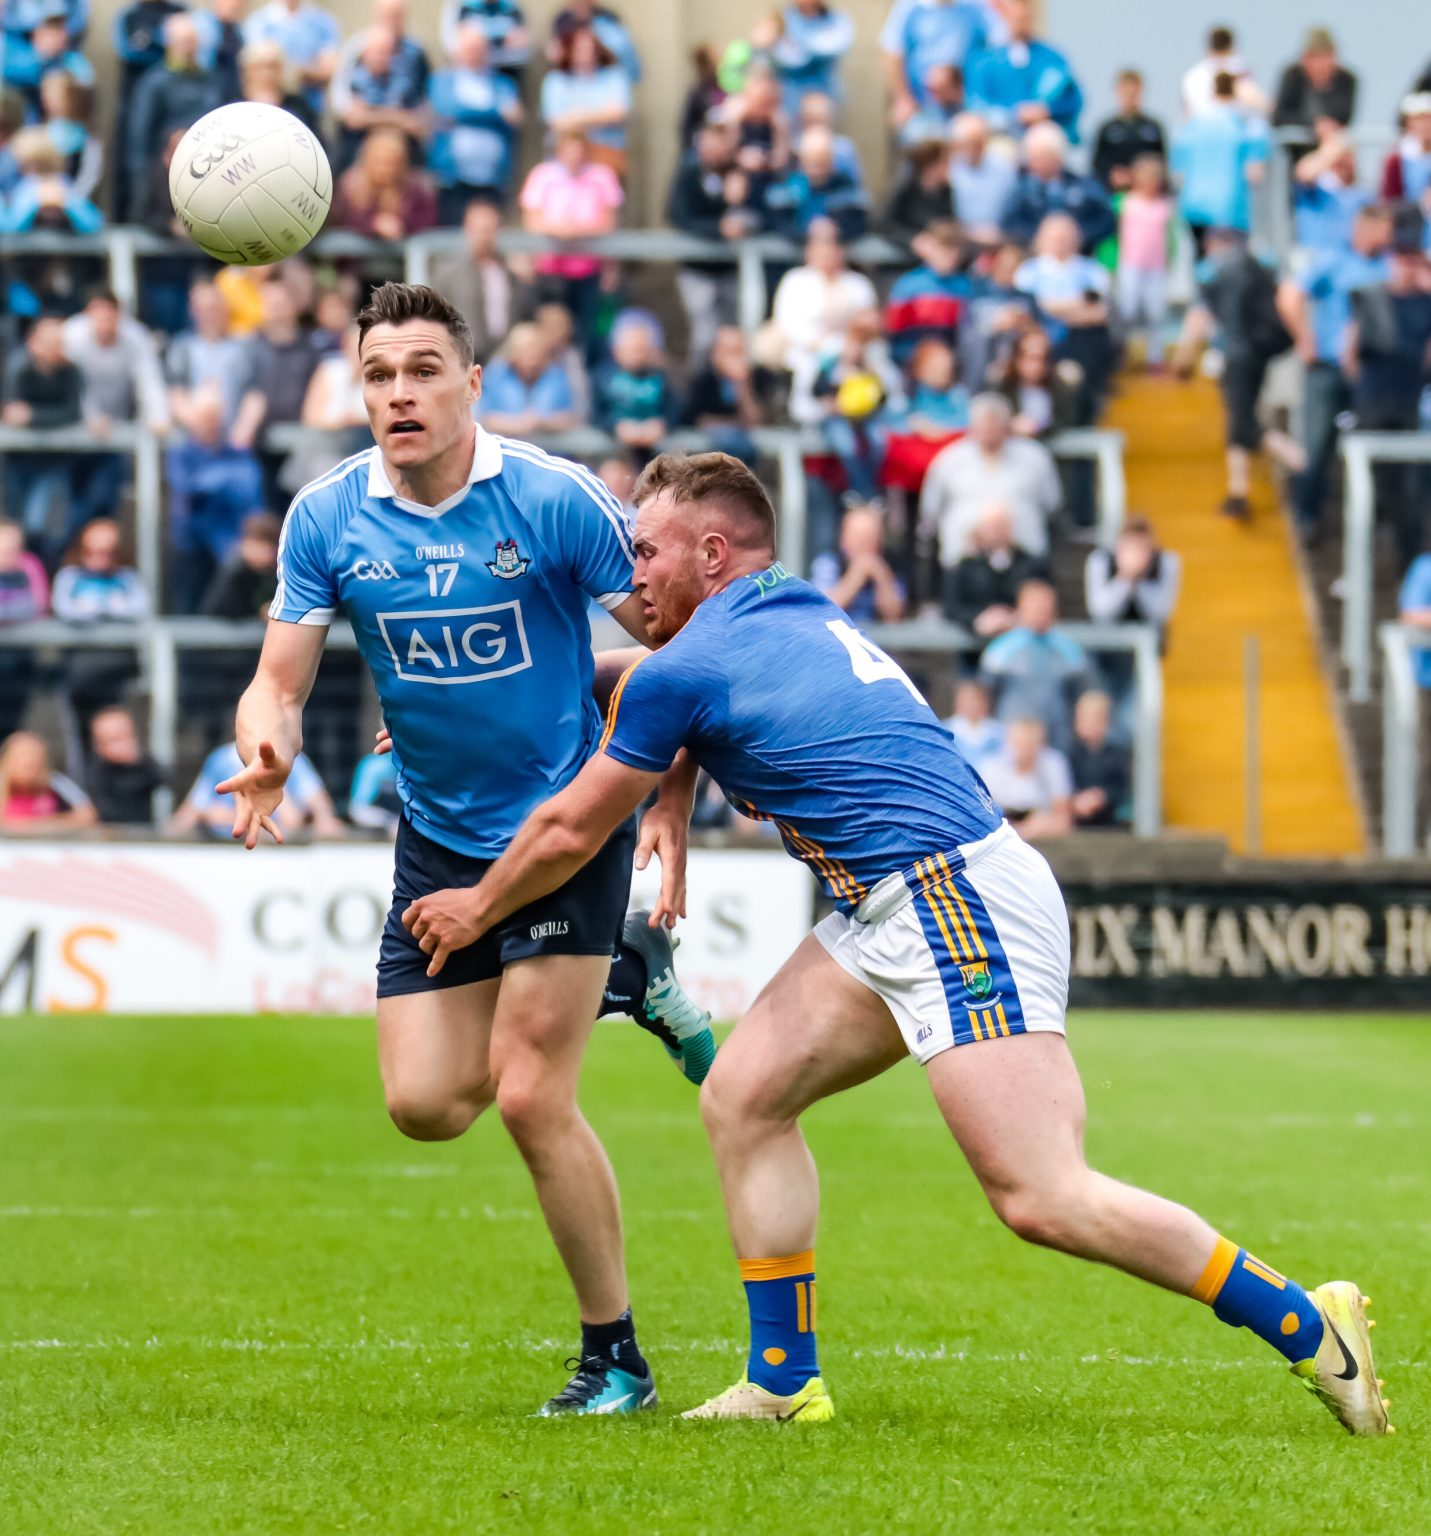 A dublin Player In a Sky Blue Jersey Battles for the ball with a wicklow Player In dark blue jersey with three yellow stripes and white shorts in Championship opener